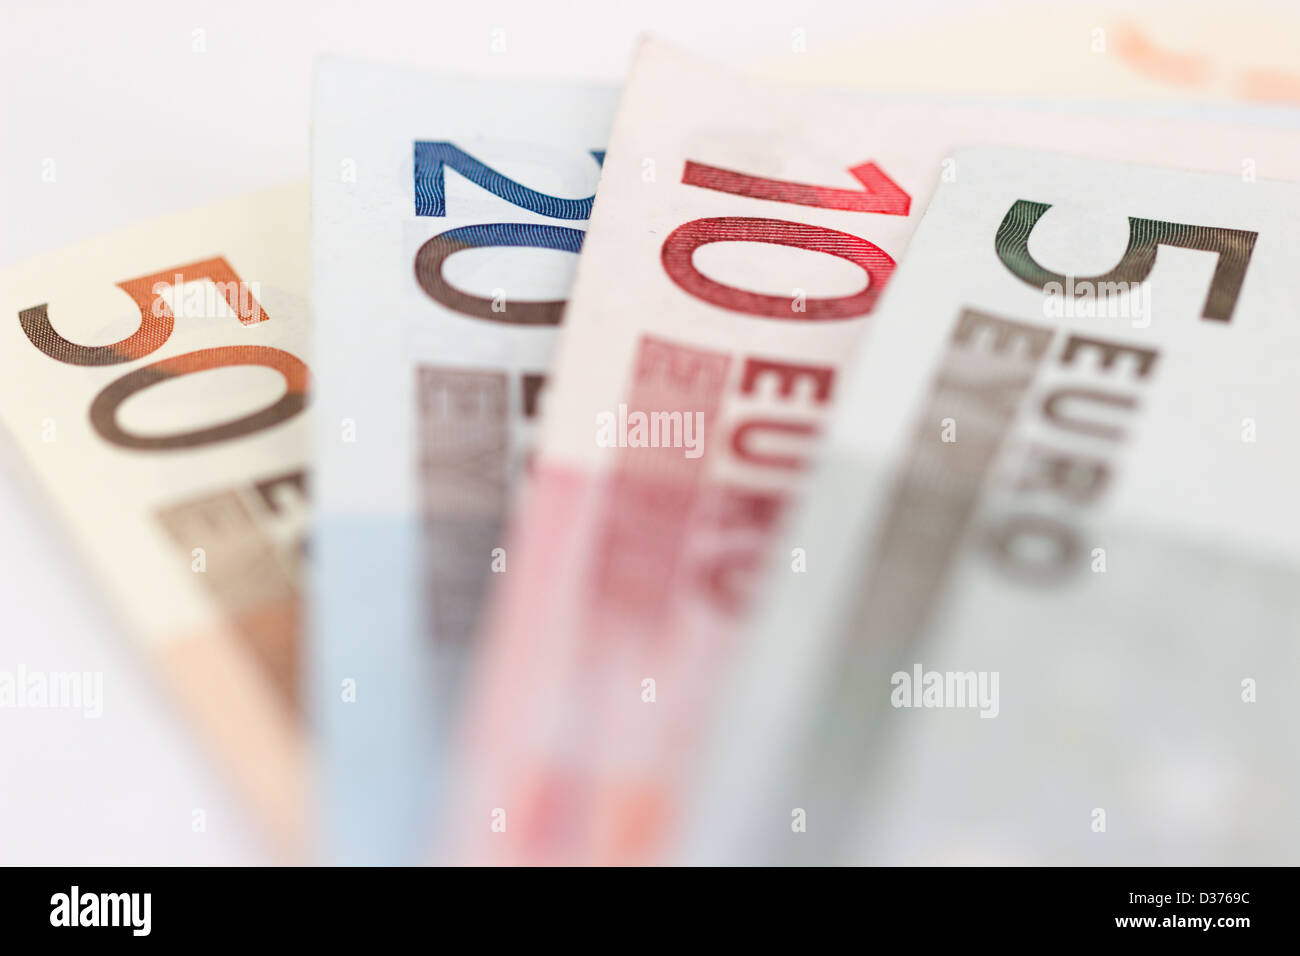 Euro bank notes values of 5, 10, 20 and 50 - Stock Image